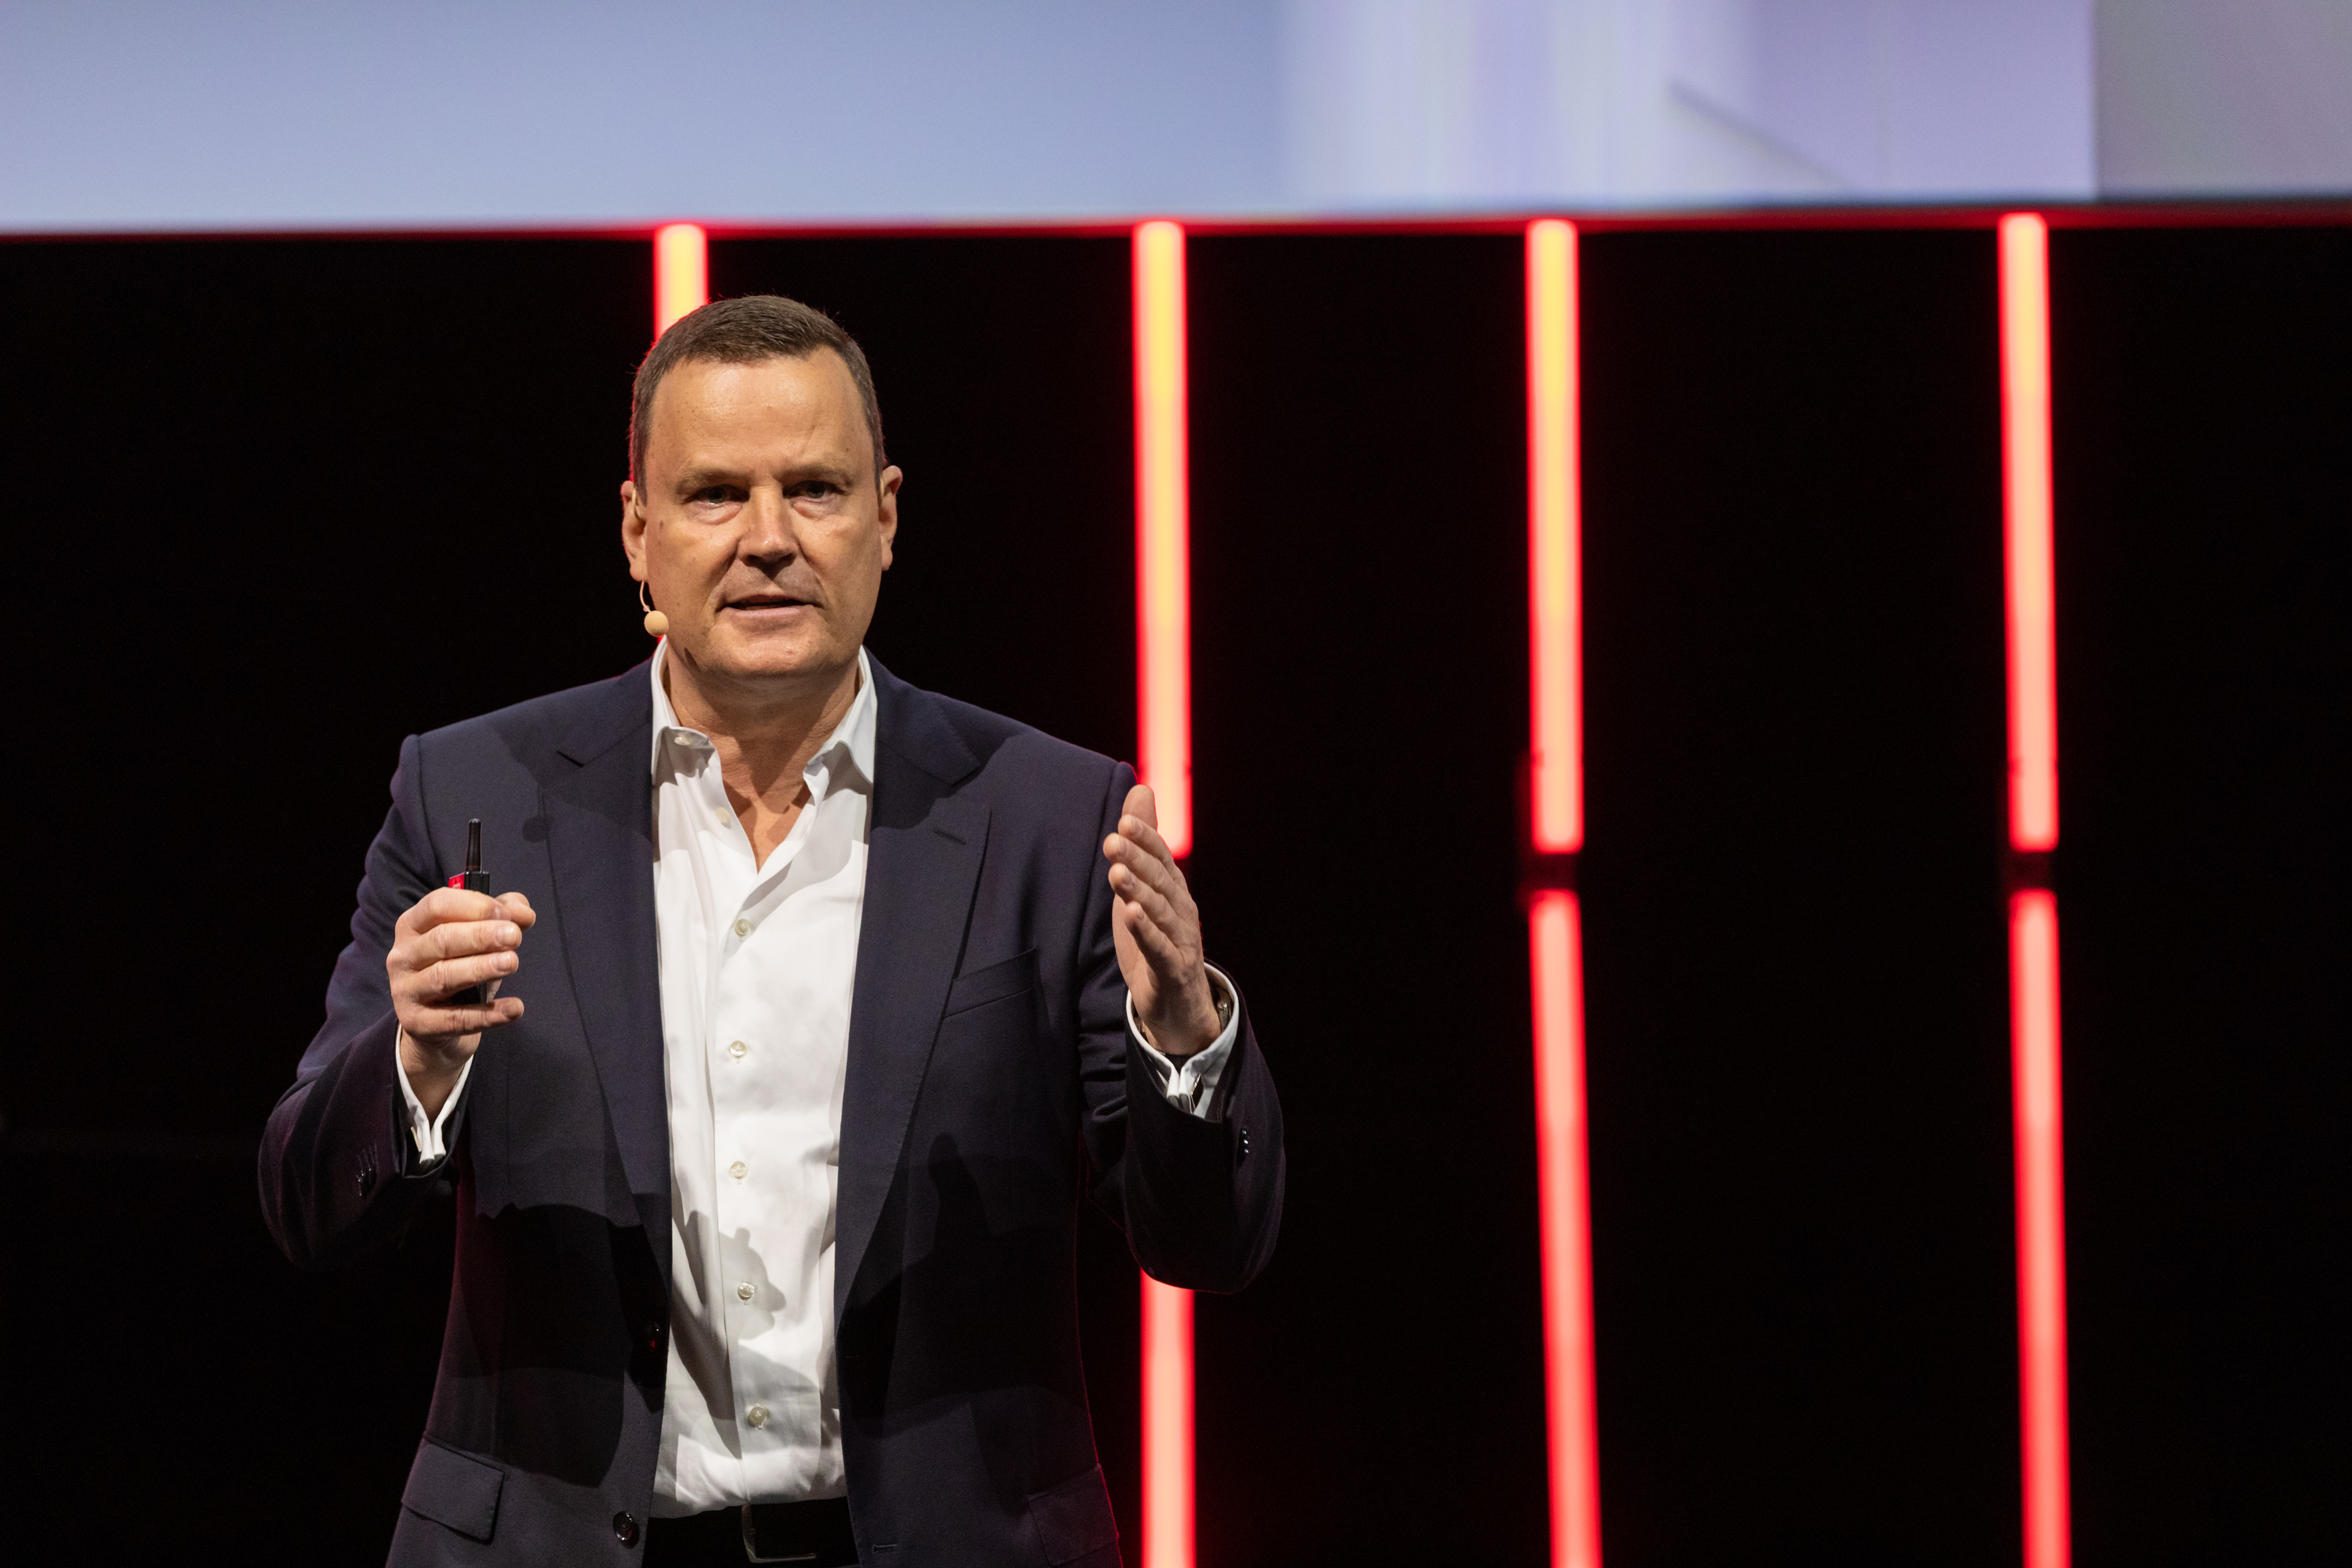 Peter Feld, CEO of GfK, outlines the reasons behind GfK's partnership with IFA